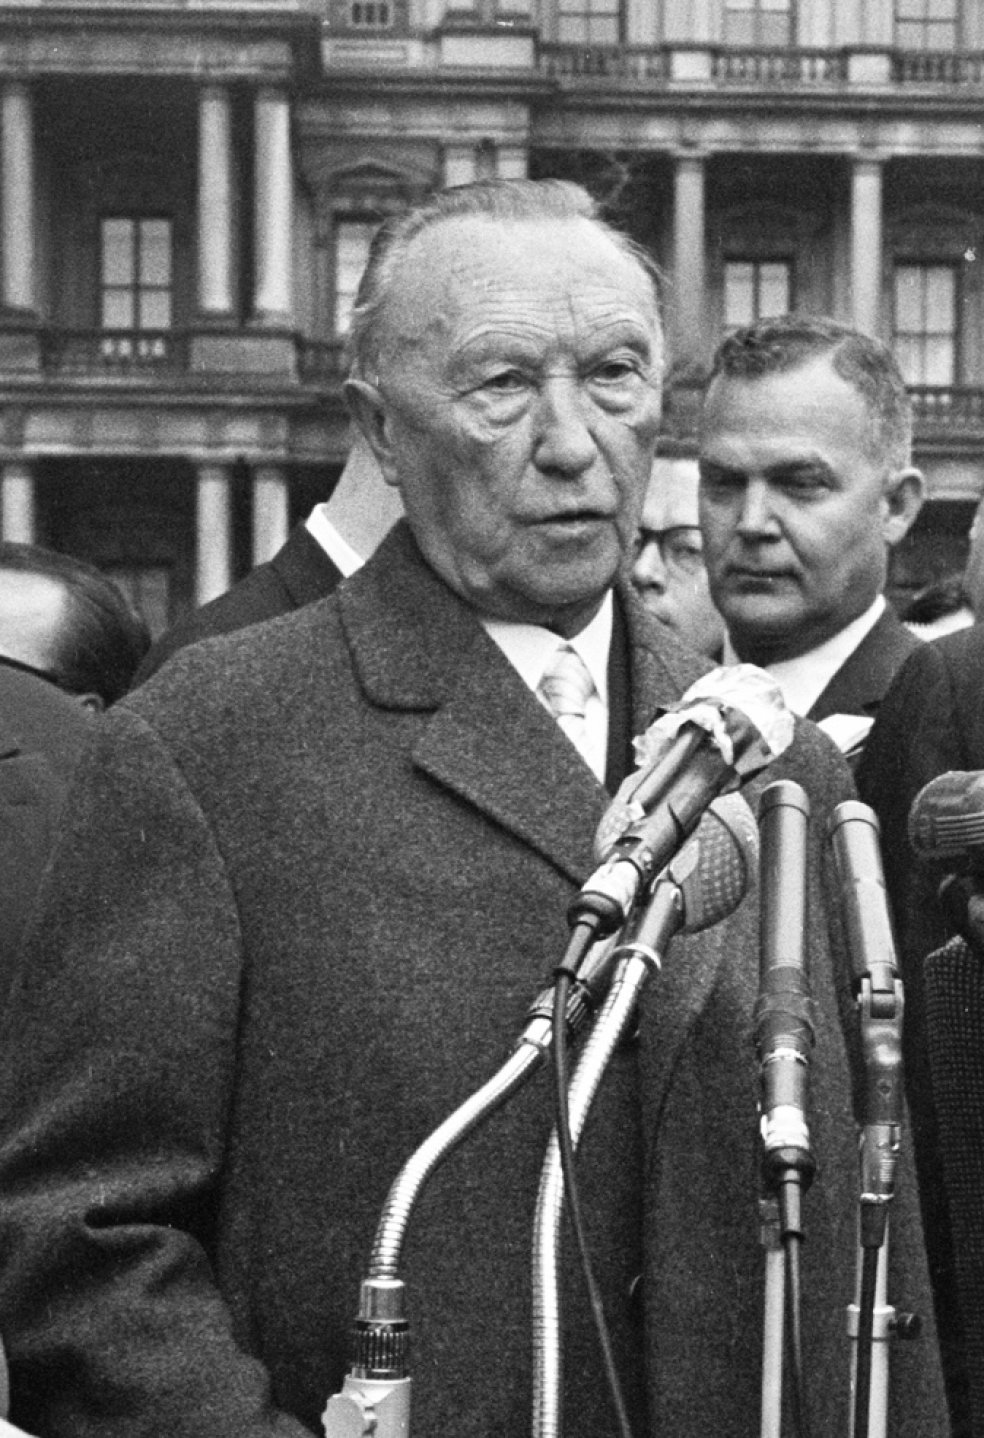 Adenauer Rose Chronicle Of The Berlin Wall 1961 Chronicle Of The Wall